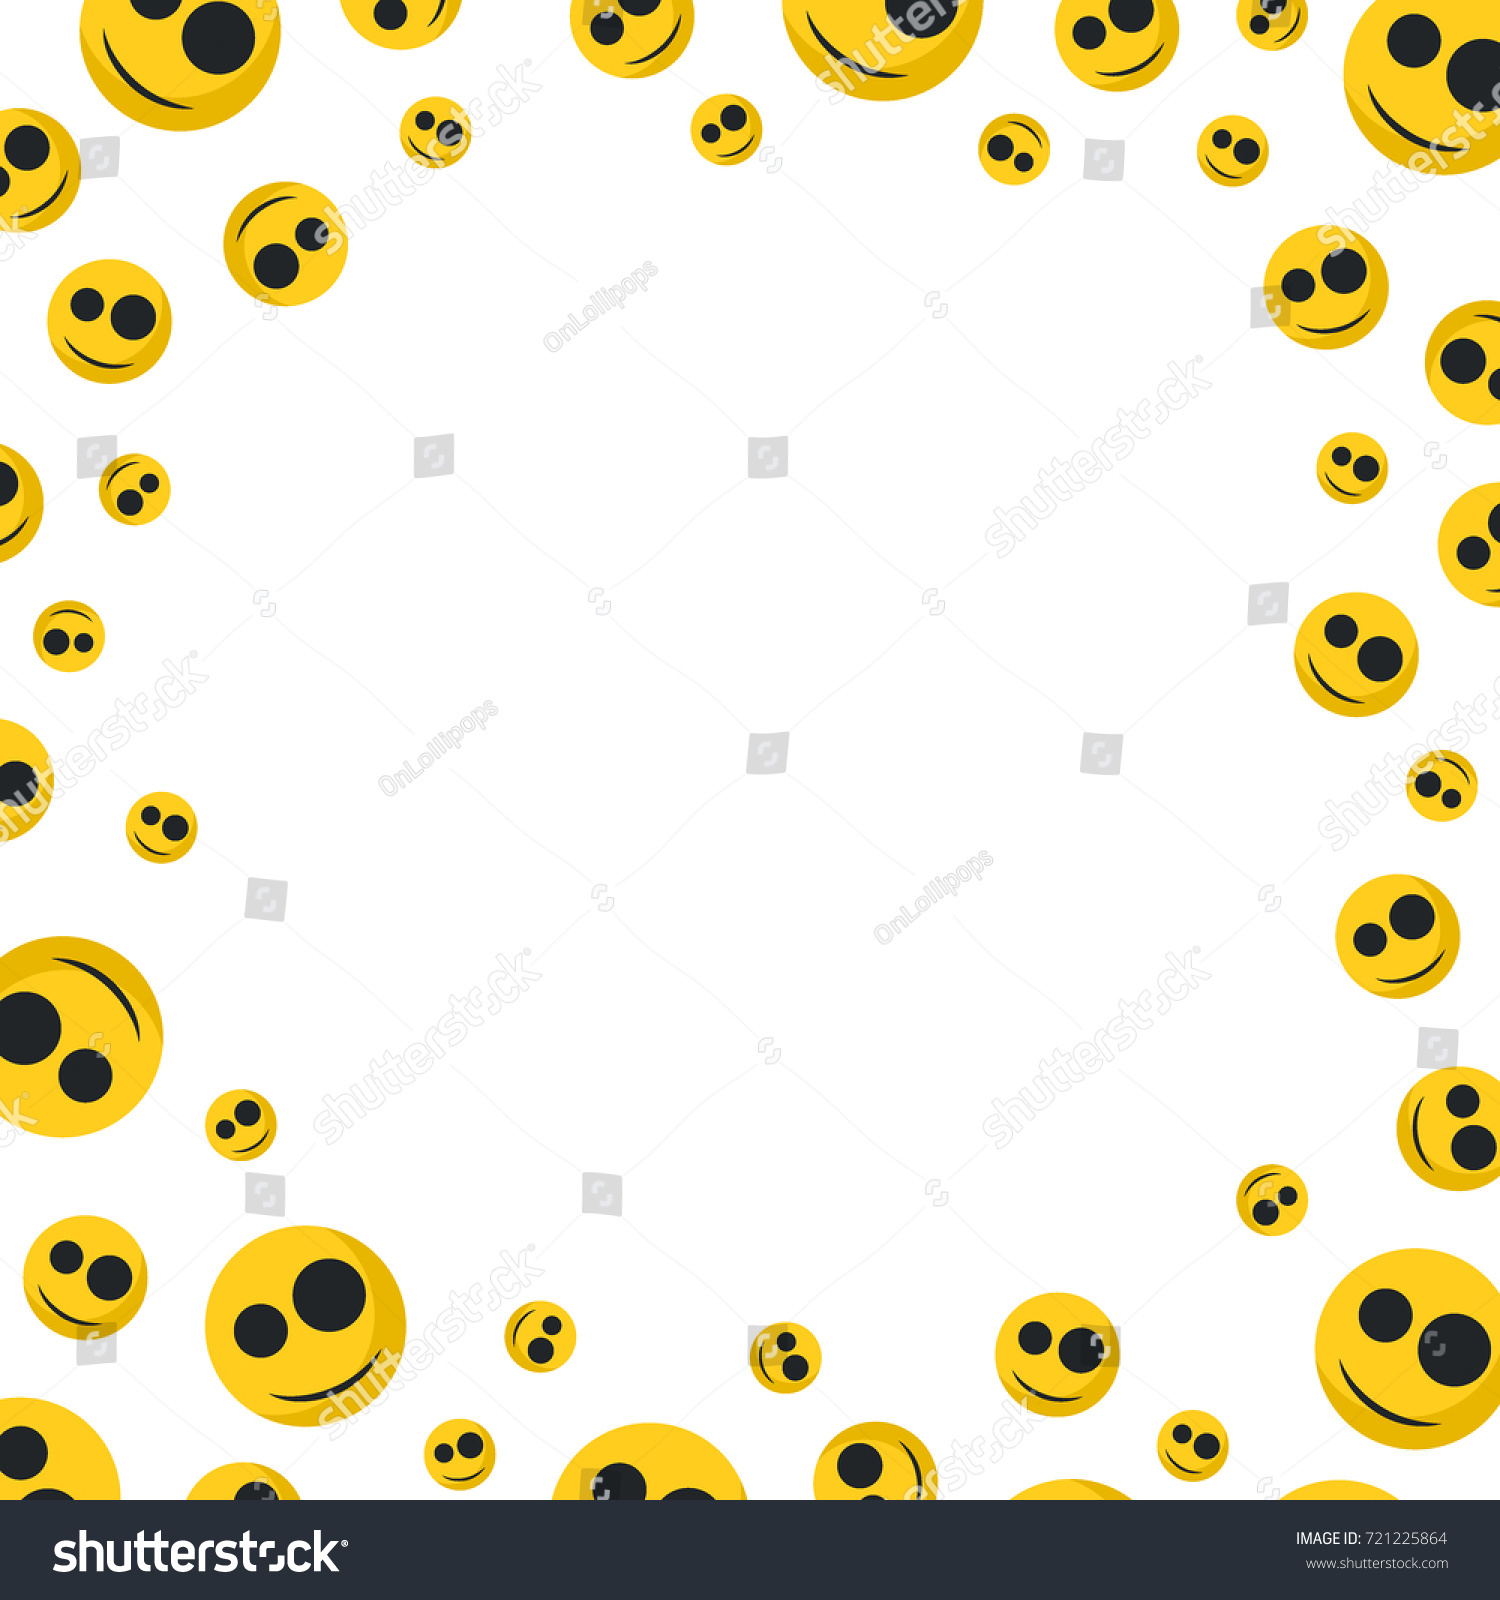 Smiley faces emoji blank space text stock vector 721225864 smiley faces emoji with blank space for text vector illustration buycottarizona Images